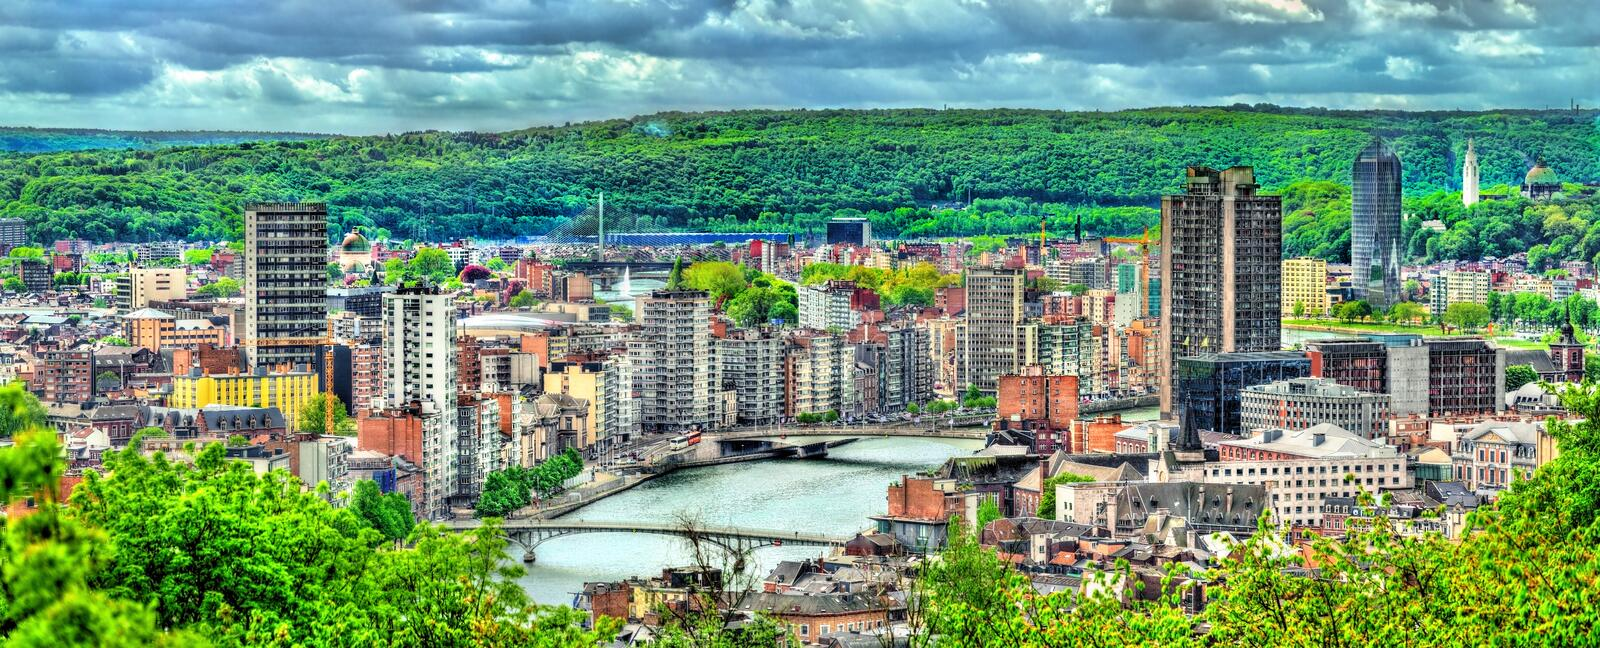 Panorama of Liege, a city on the banks of the Meuse river in Belgium stock image